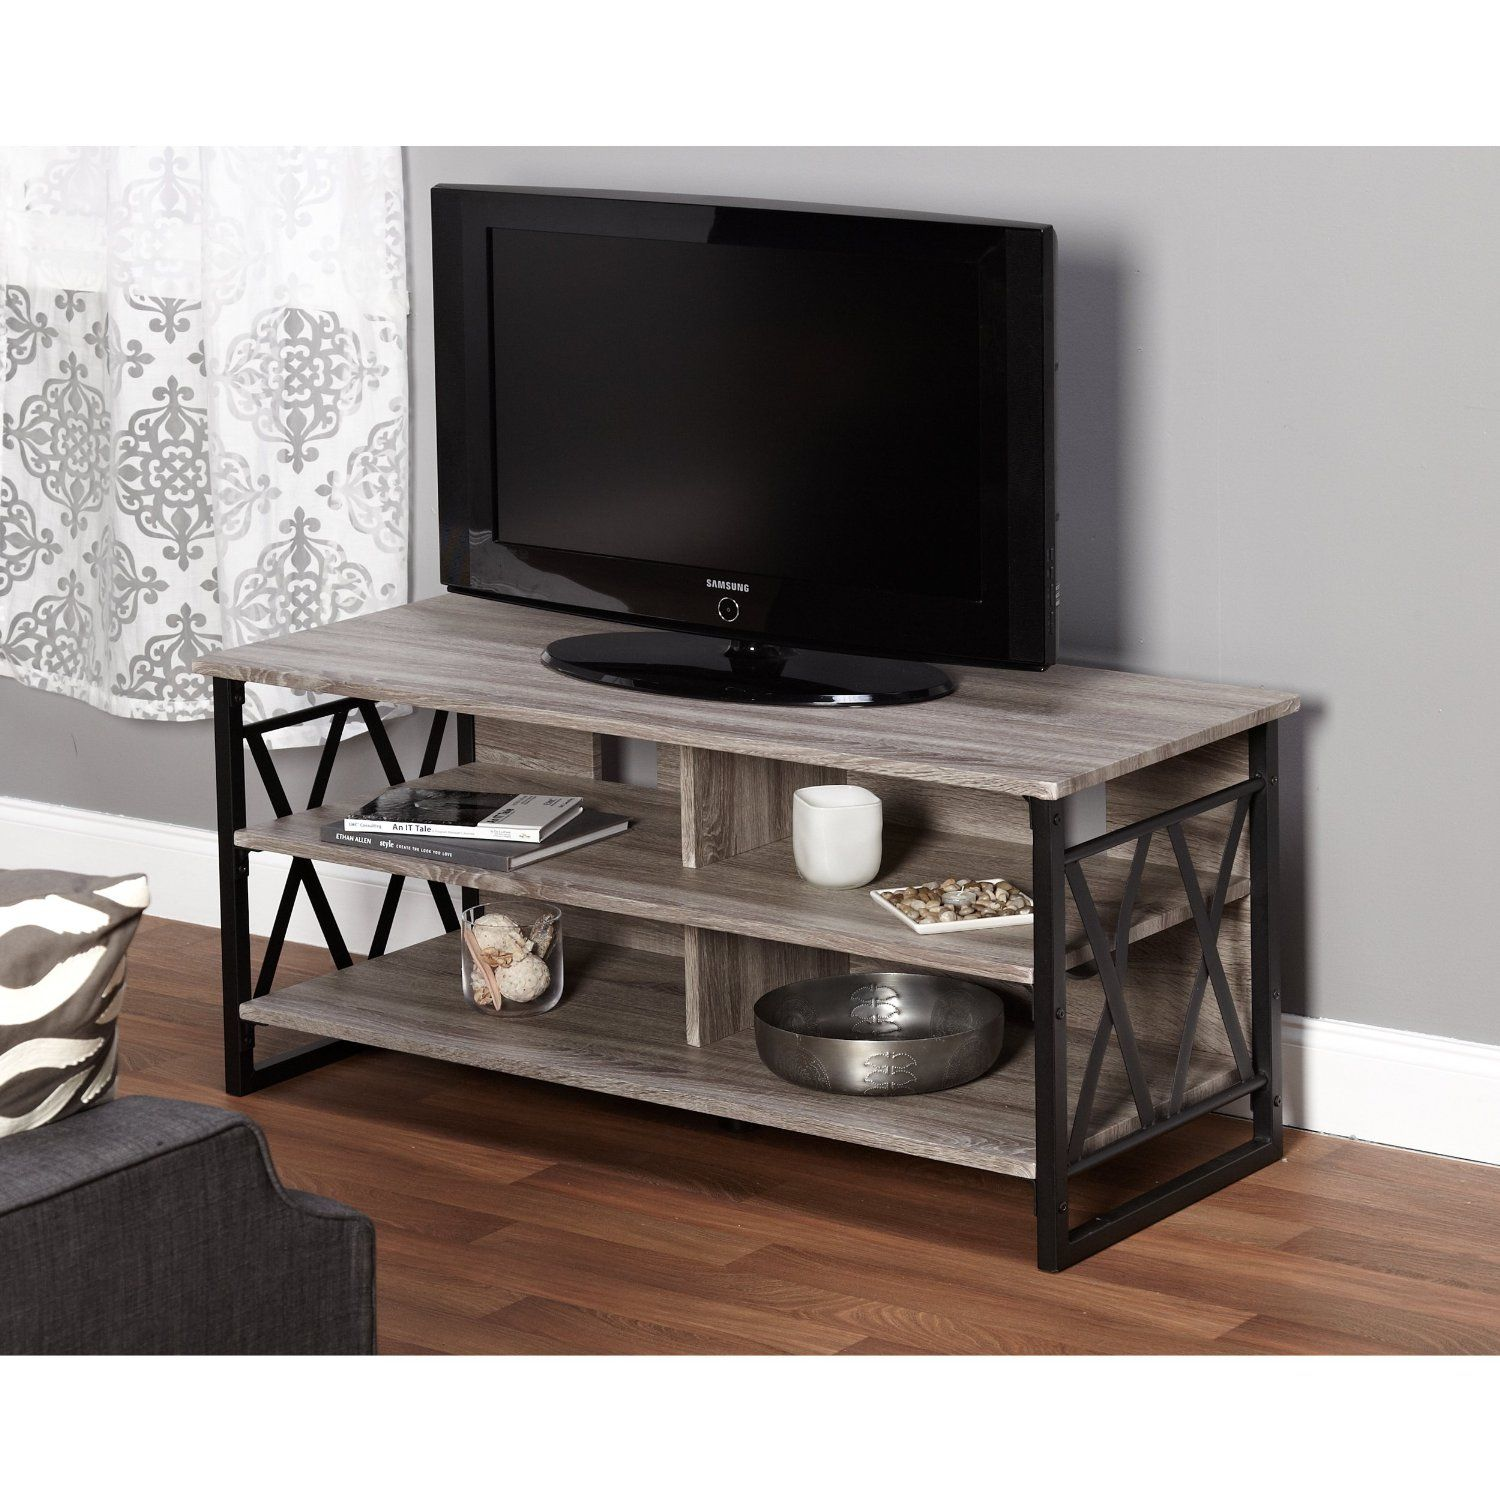 Amazon Metro Shop Seneca XX 48 inch Black Grey TV Stand